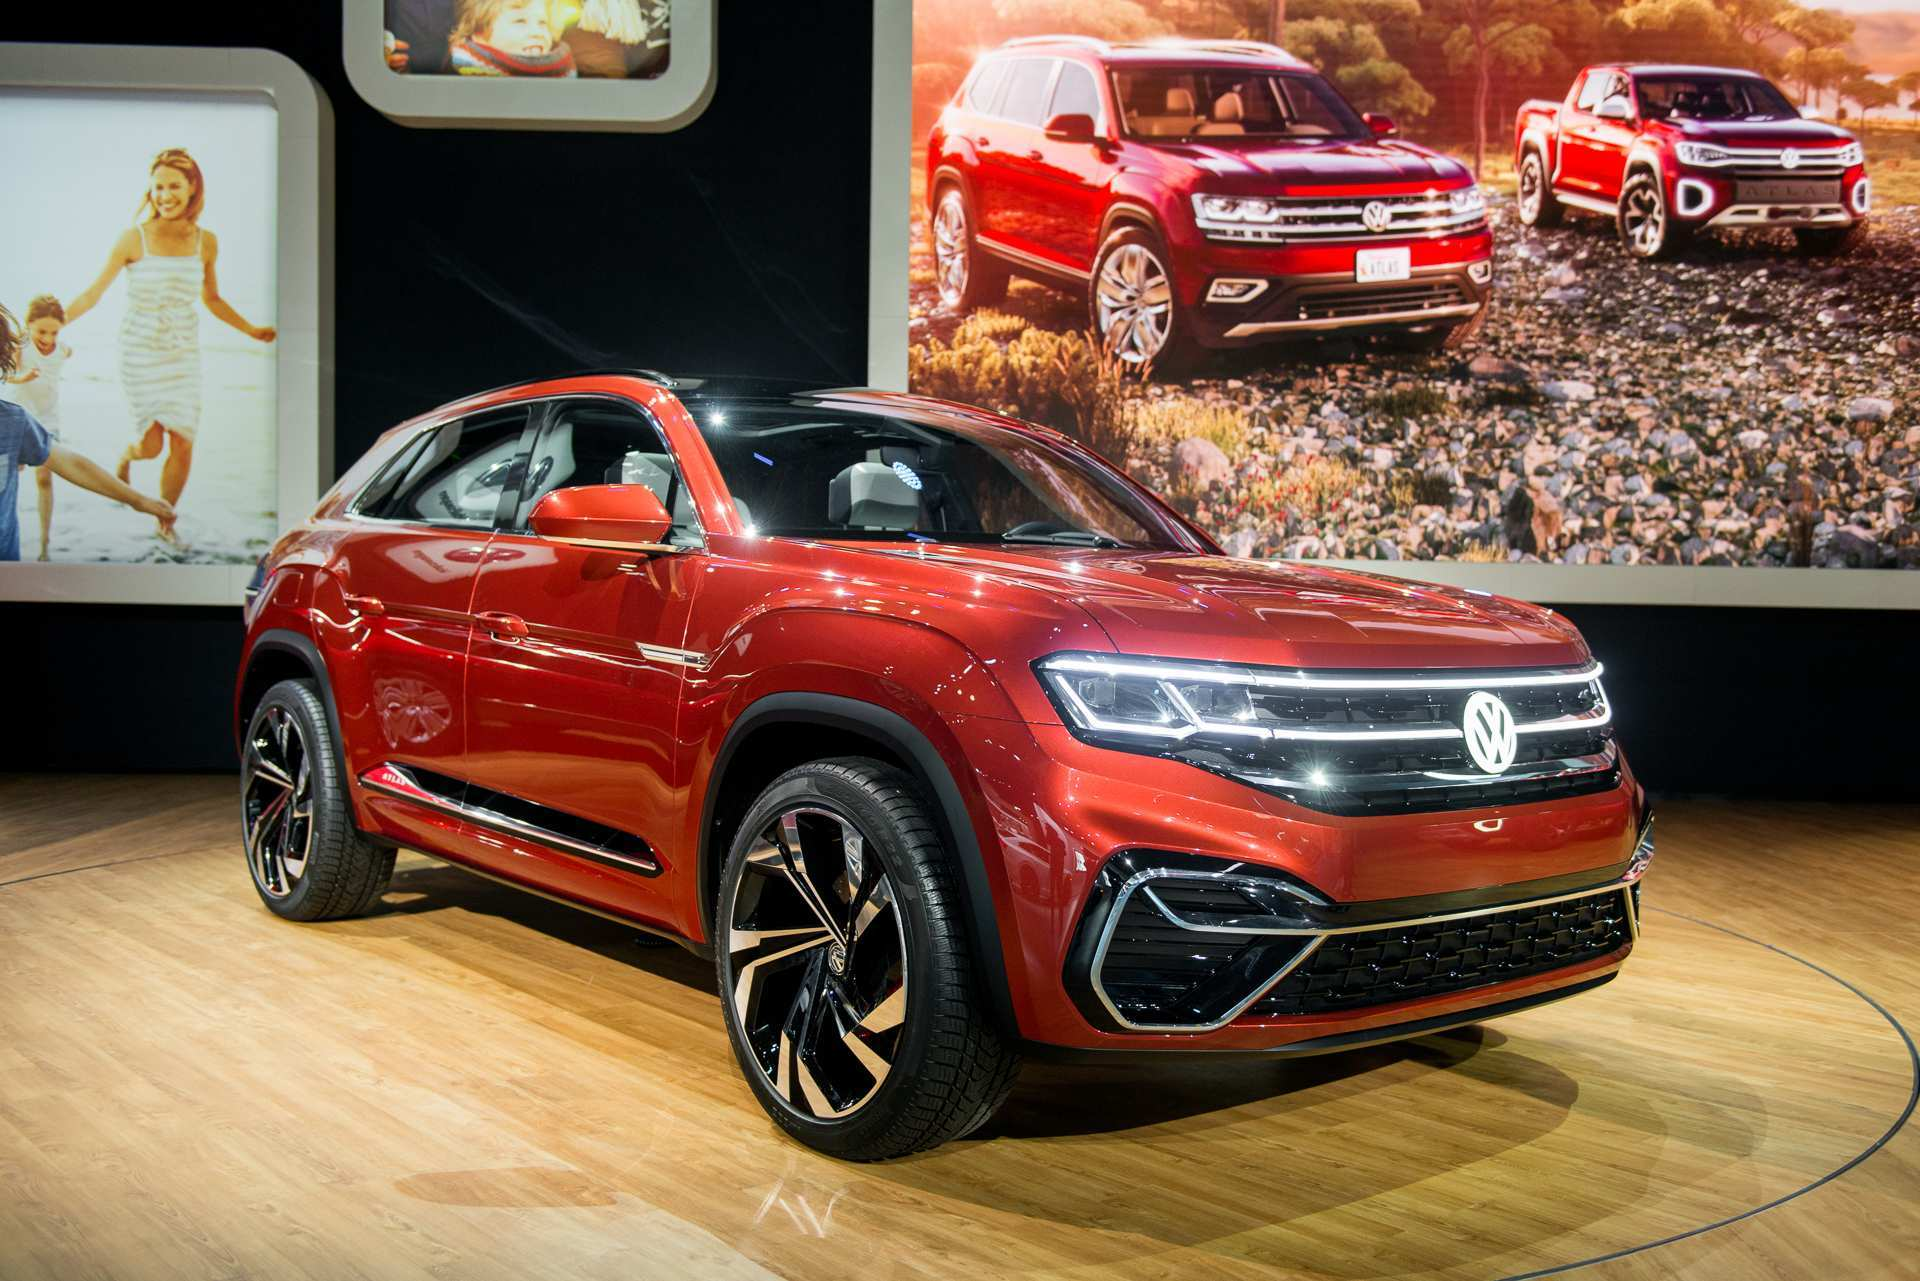 49 All New Future Volkswagen 2020 Specs and Review for Future Volkswagen 2020